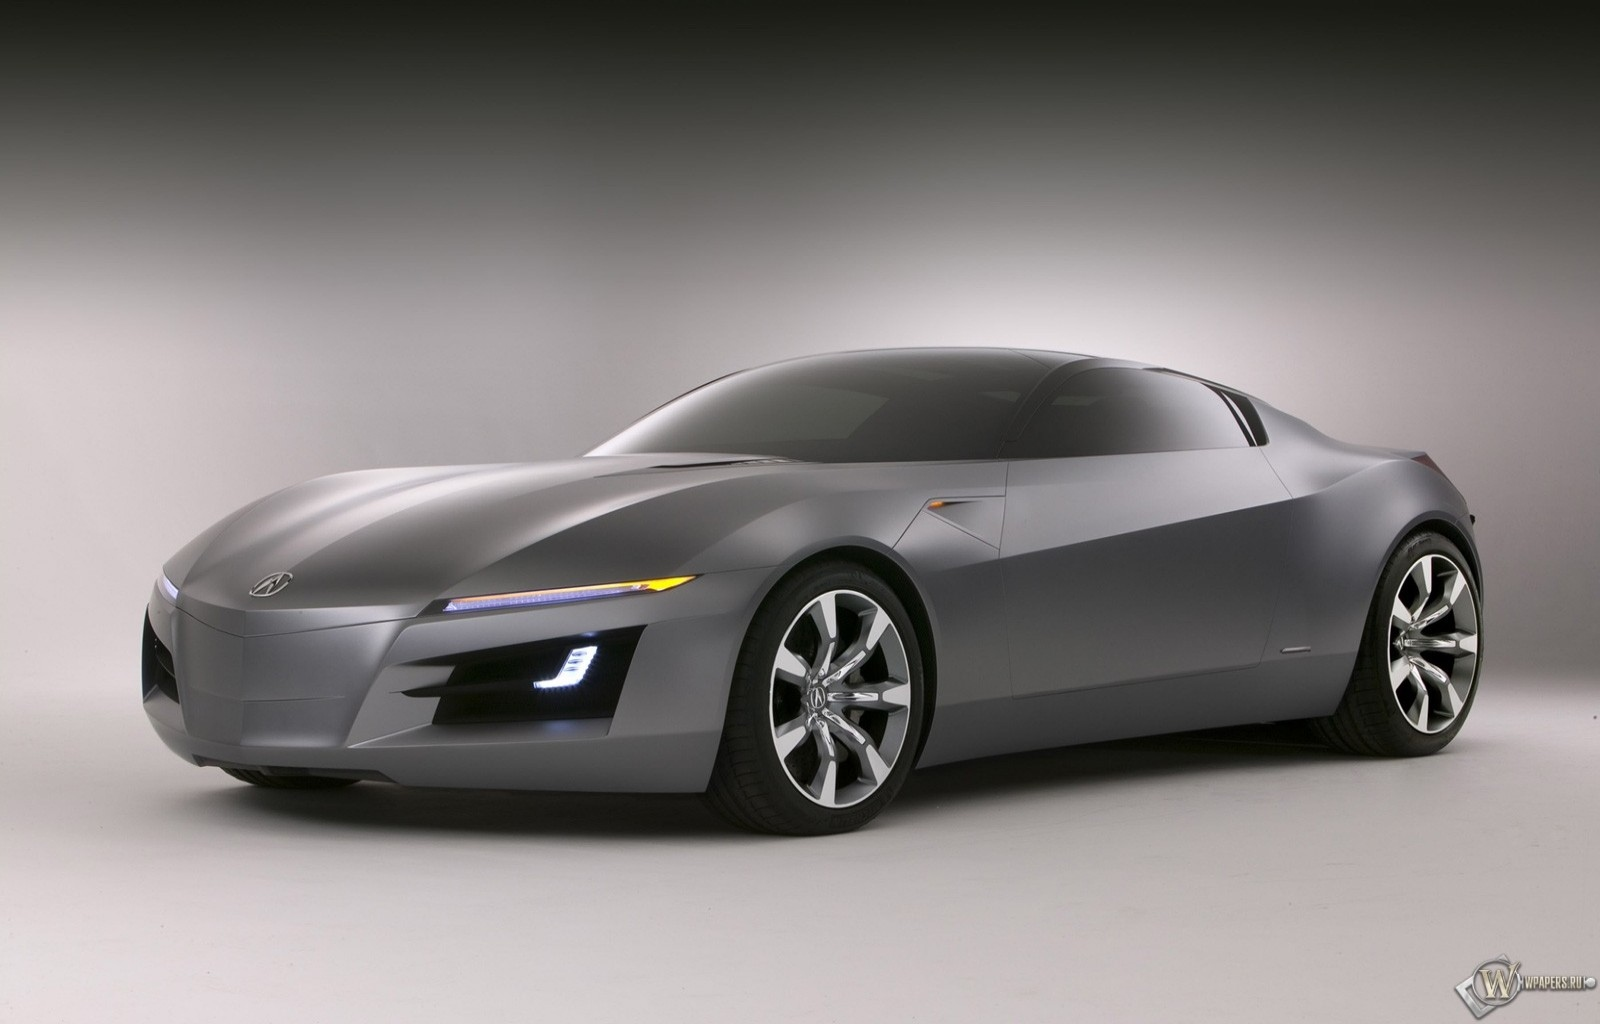 Acura Advanced Sports Car Concept (2007) 1600x1024